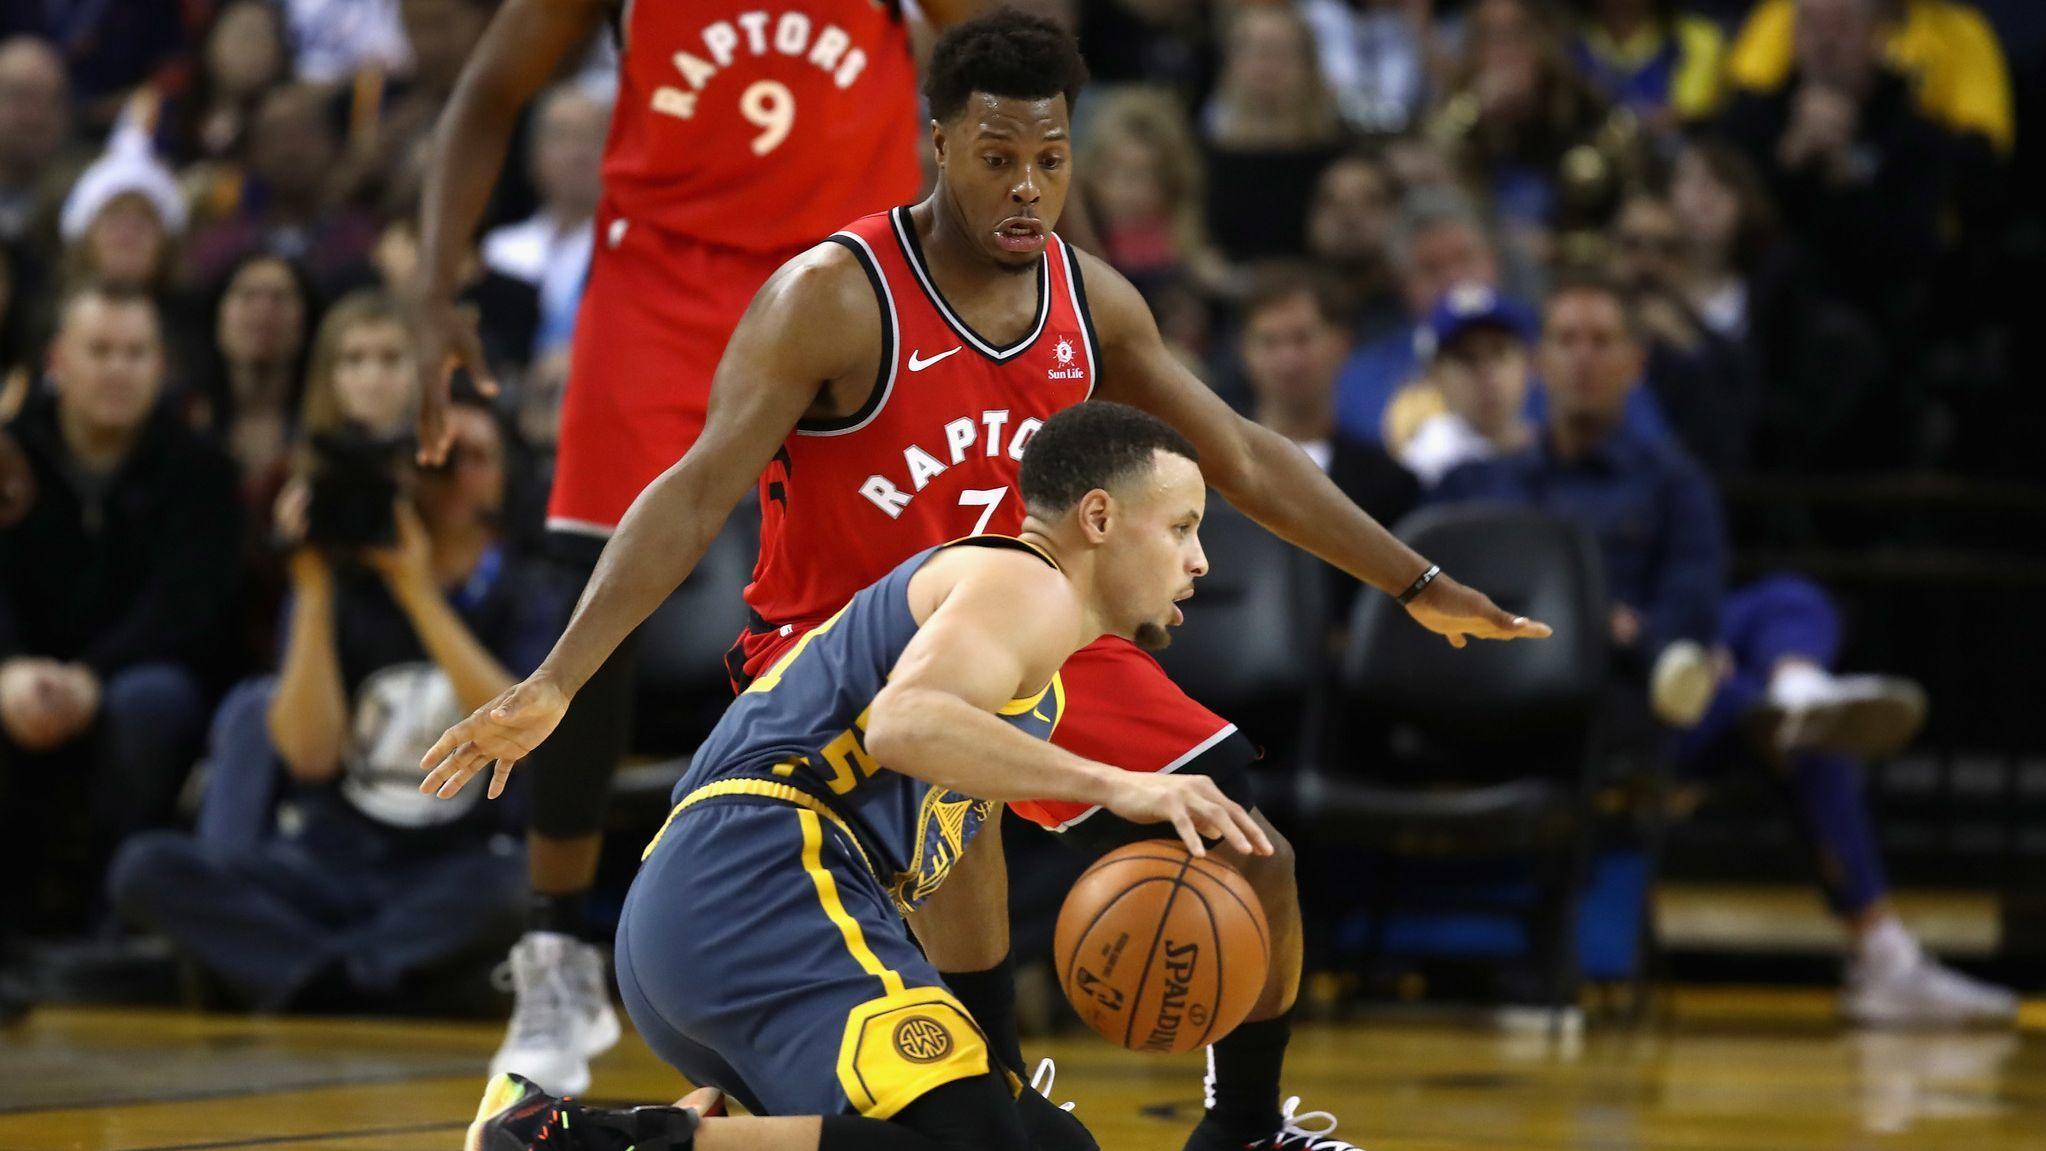 Raptors rout Warriors 113-93 without Kawhi Leonard to complete season sweep